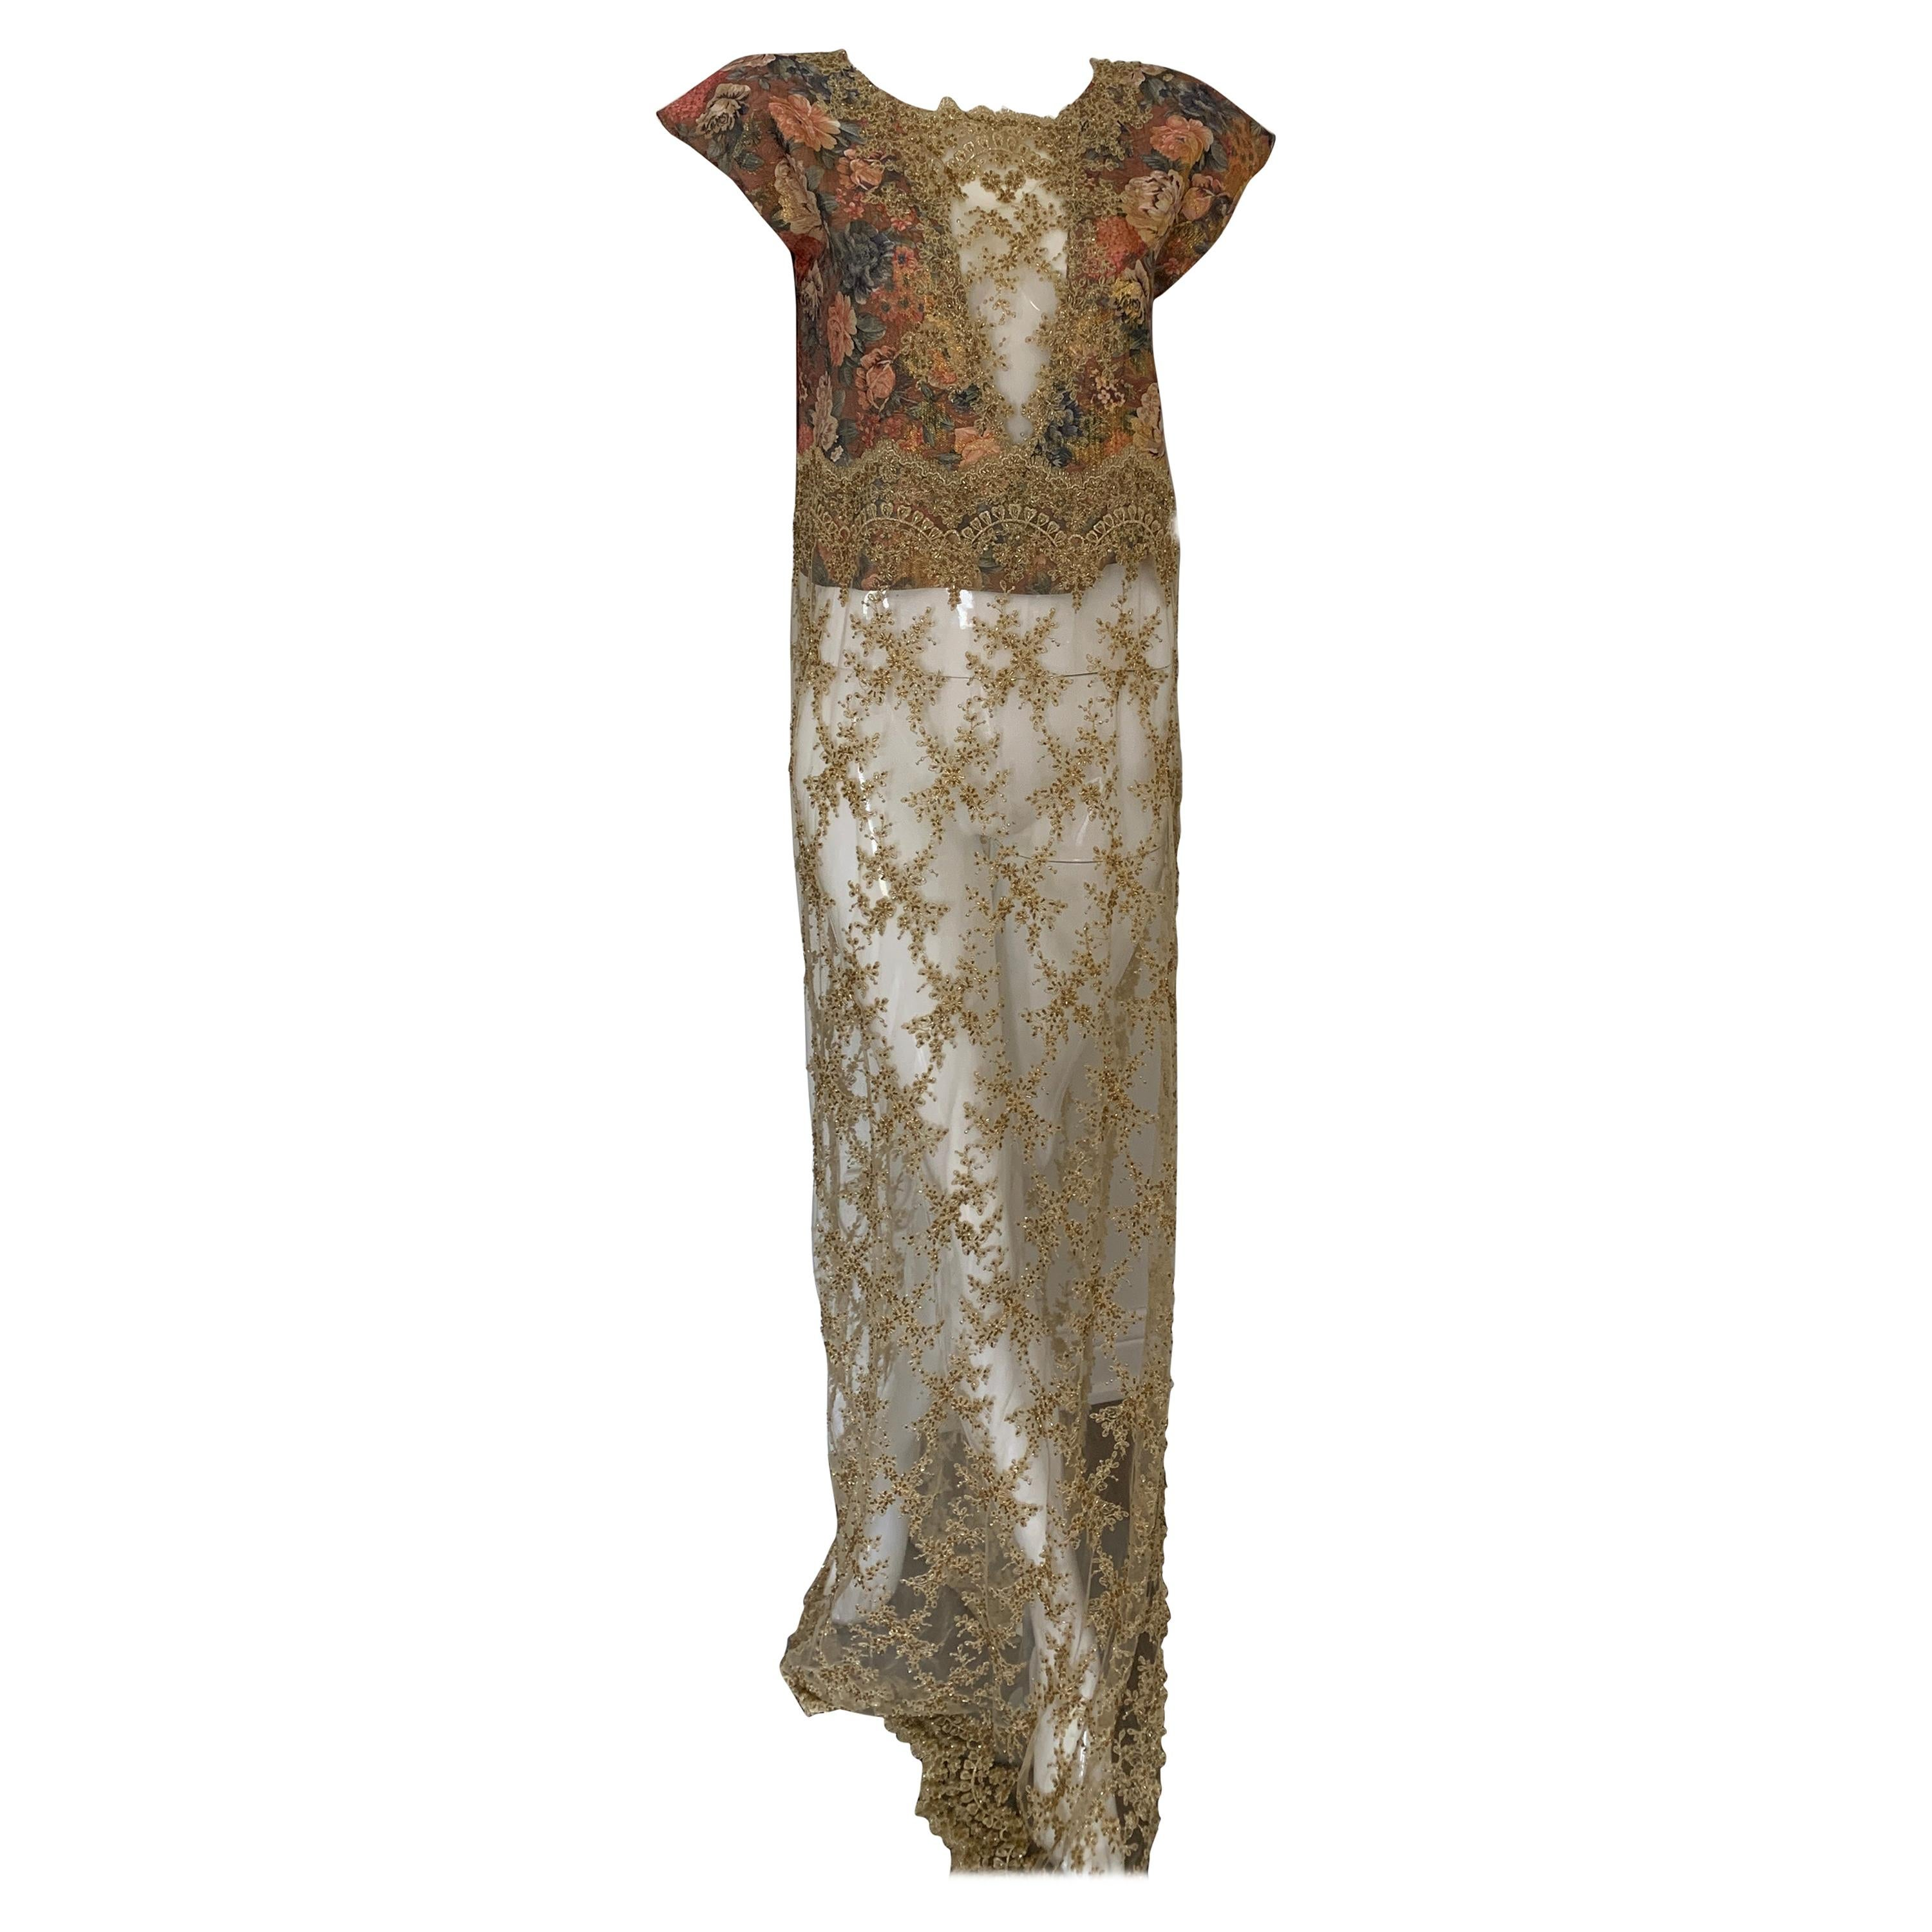 Vintage Handmade Gold Applique and Floral Gown